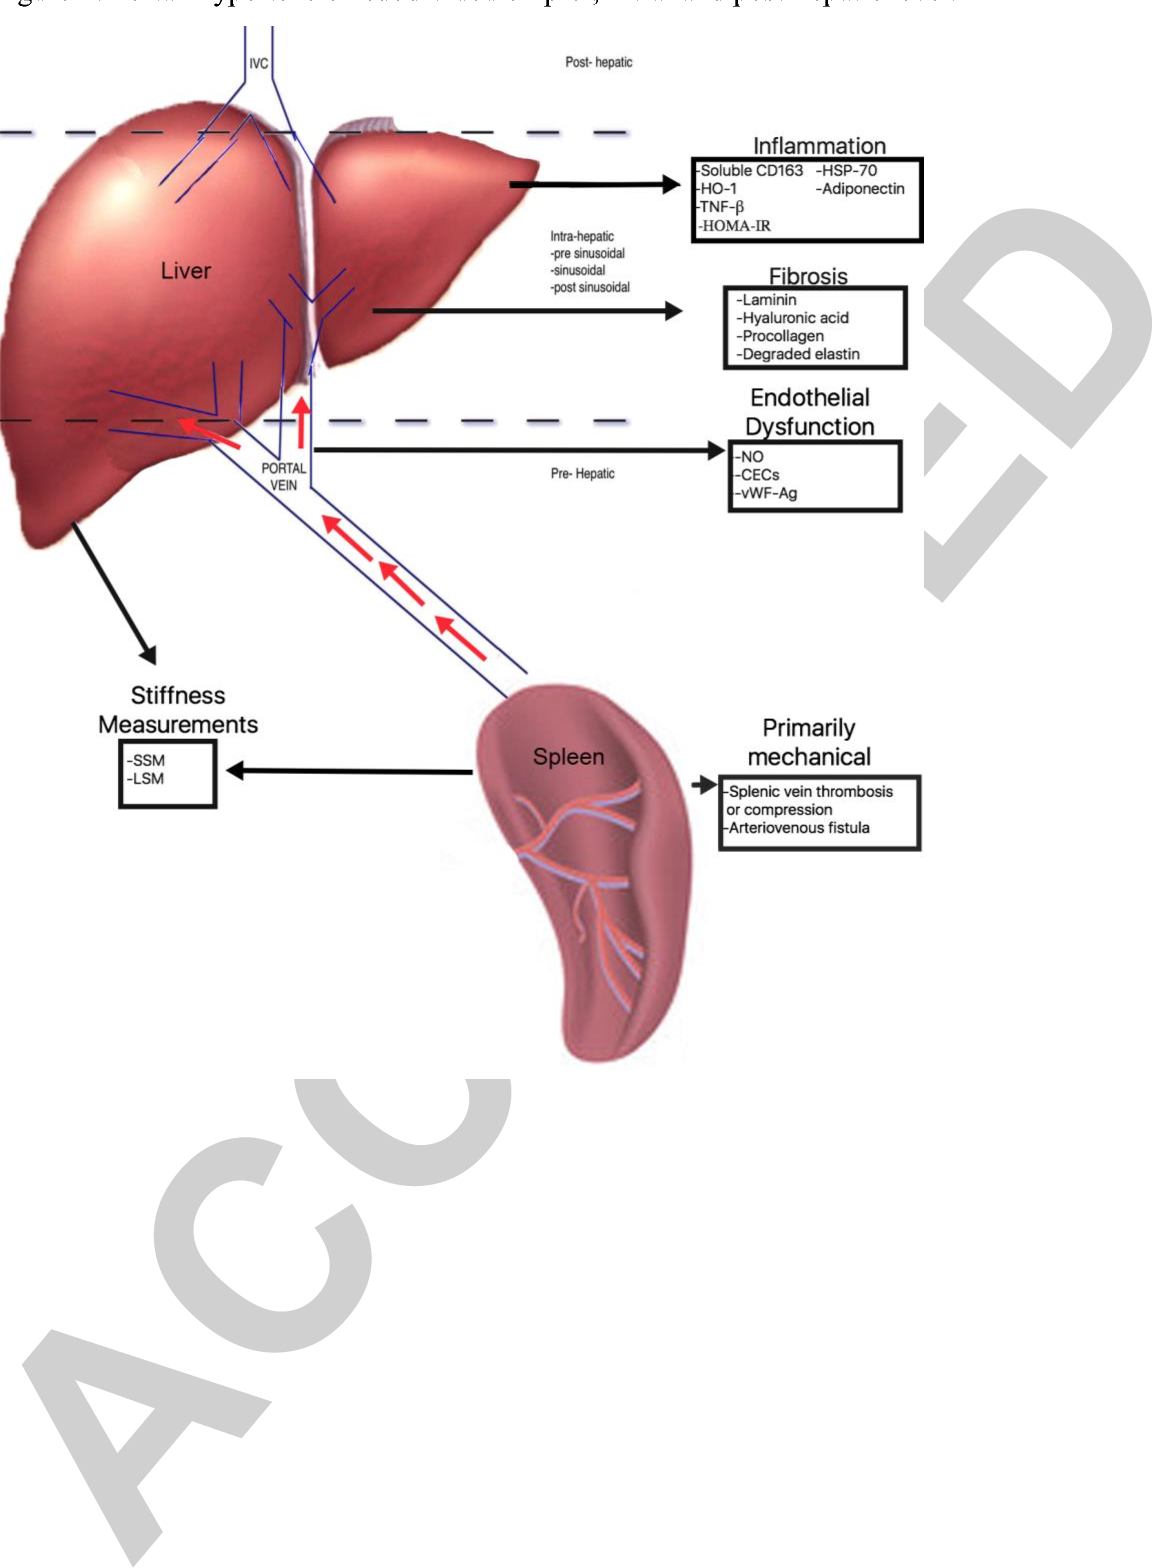 Non-invasive Markers of Portal Hypertension: Appraisal of